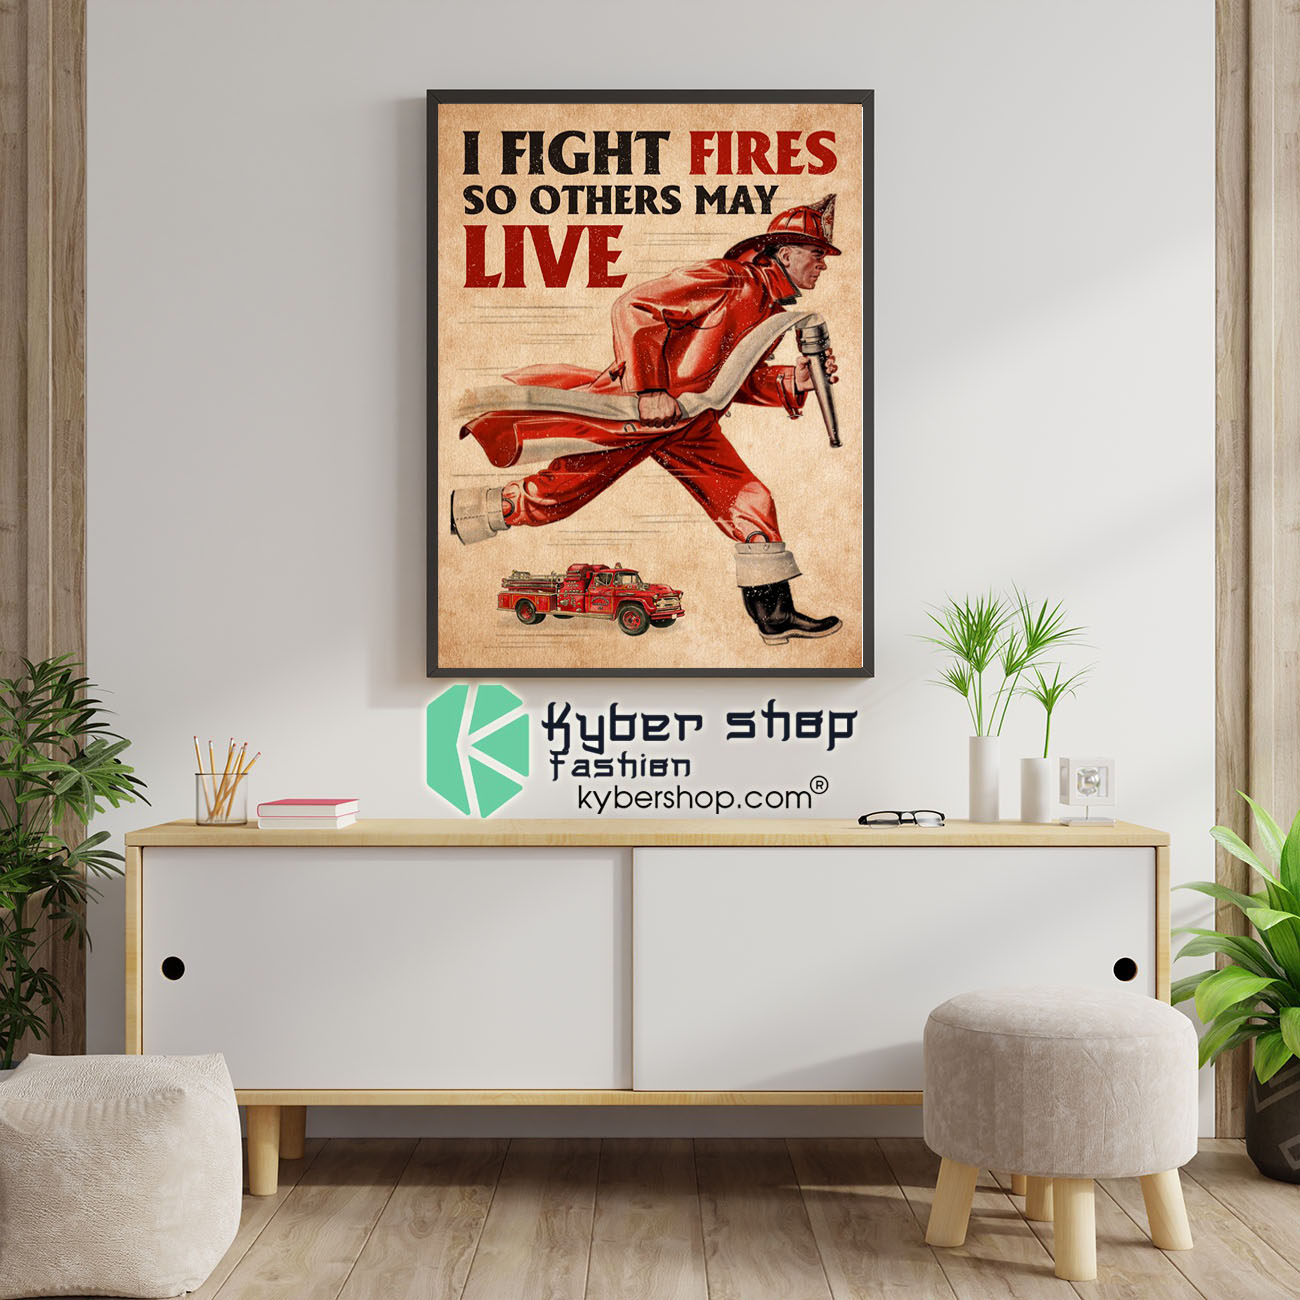 Firefighter I fight fires so others may live poster6